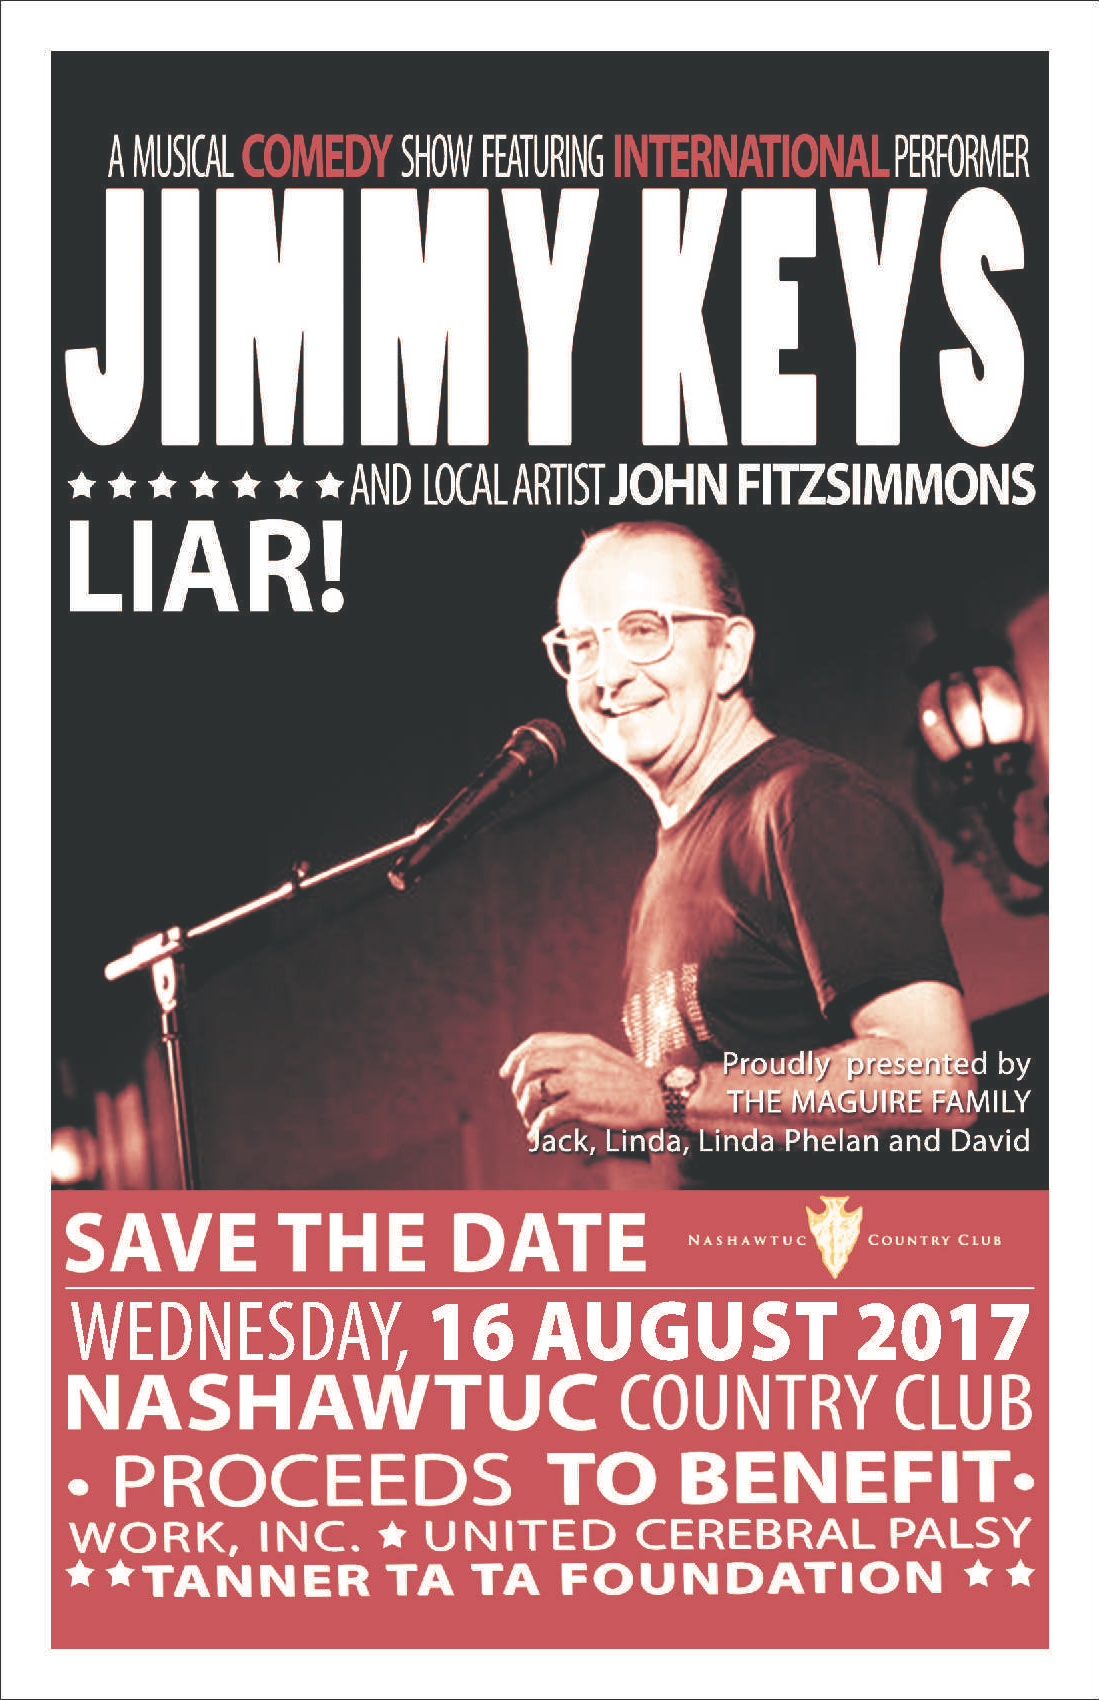 jimmy-keys-save-the-date-8-16-2017_1-e1499389449277.jpg